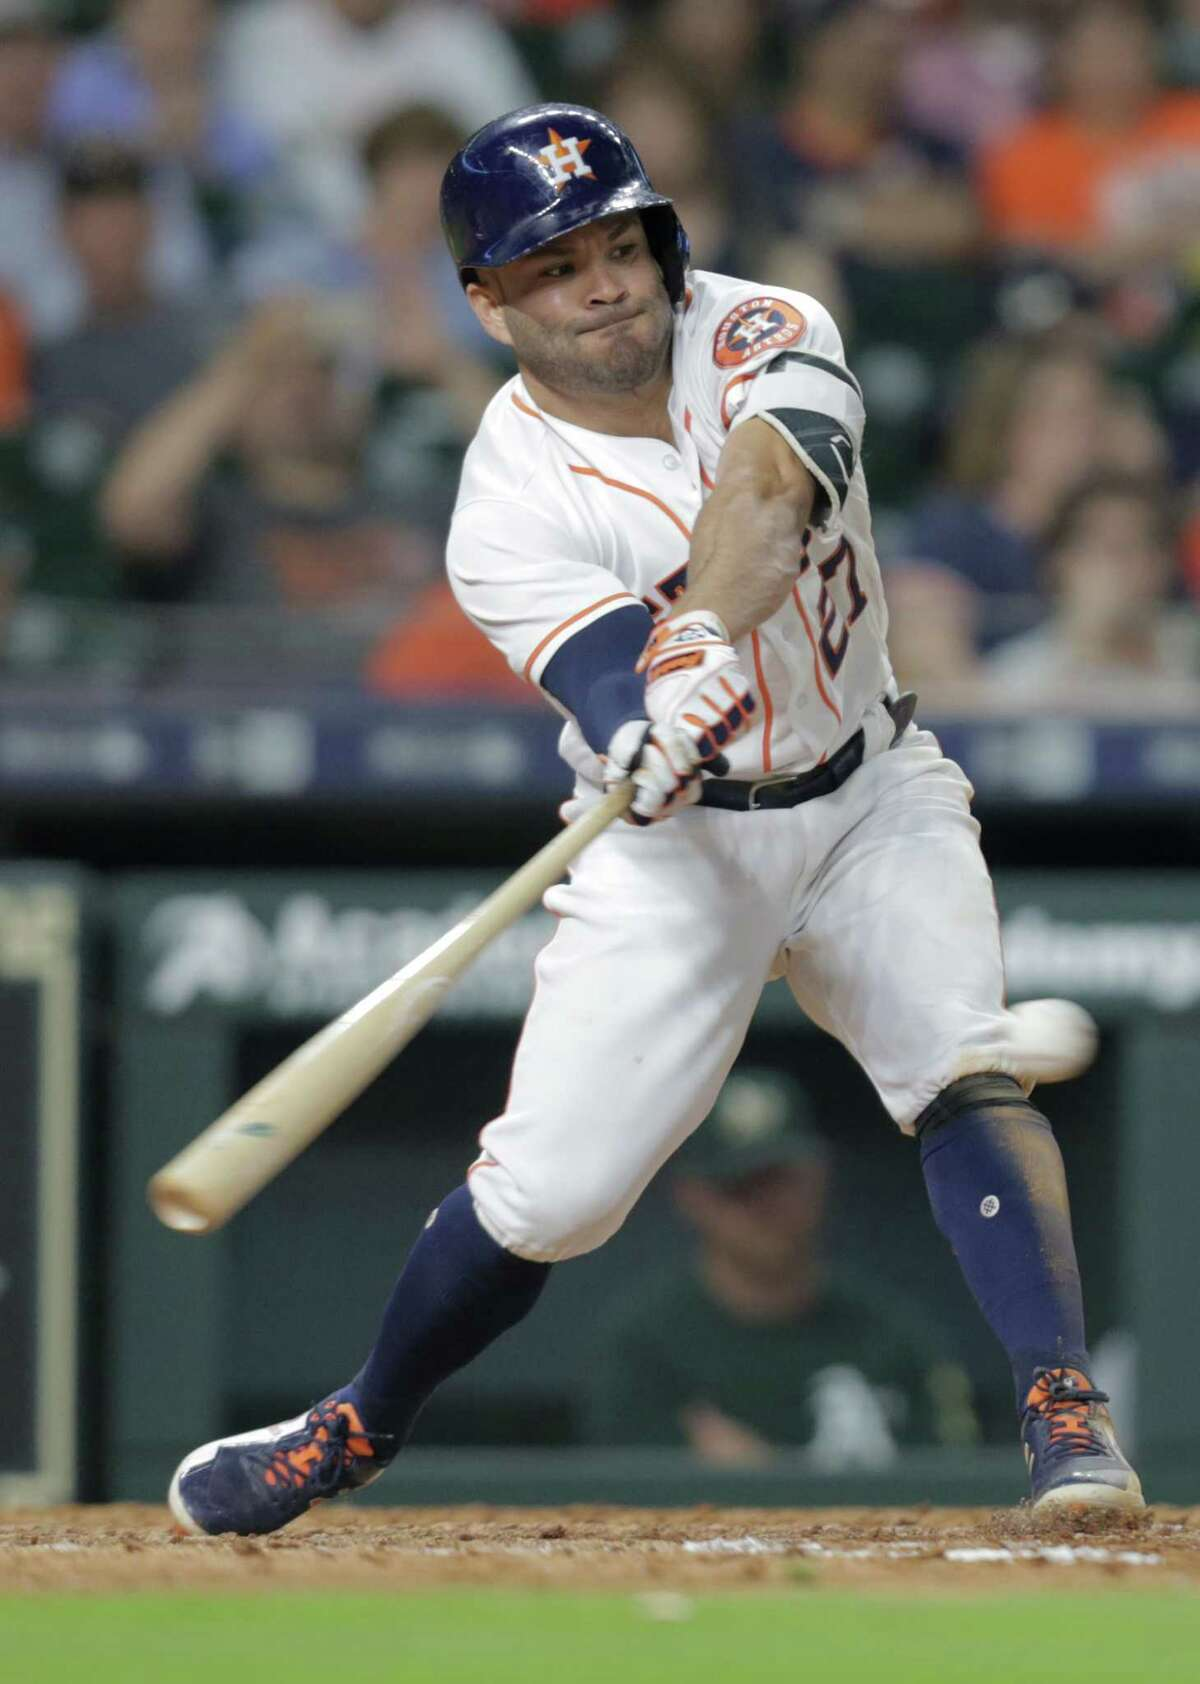 Houston Astros second baseman Jose Altuve (27) connects for a single in the eighth inning against the Oakland Athletics at Minute Maid Park on Saturday, April 28, 2018, in Houston. Houston Astros won the game 11-0 and tied the series 1-1.